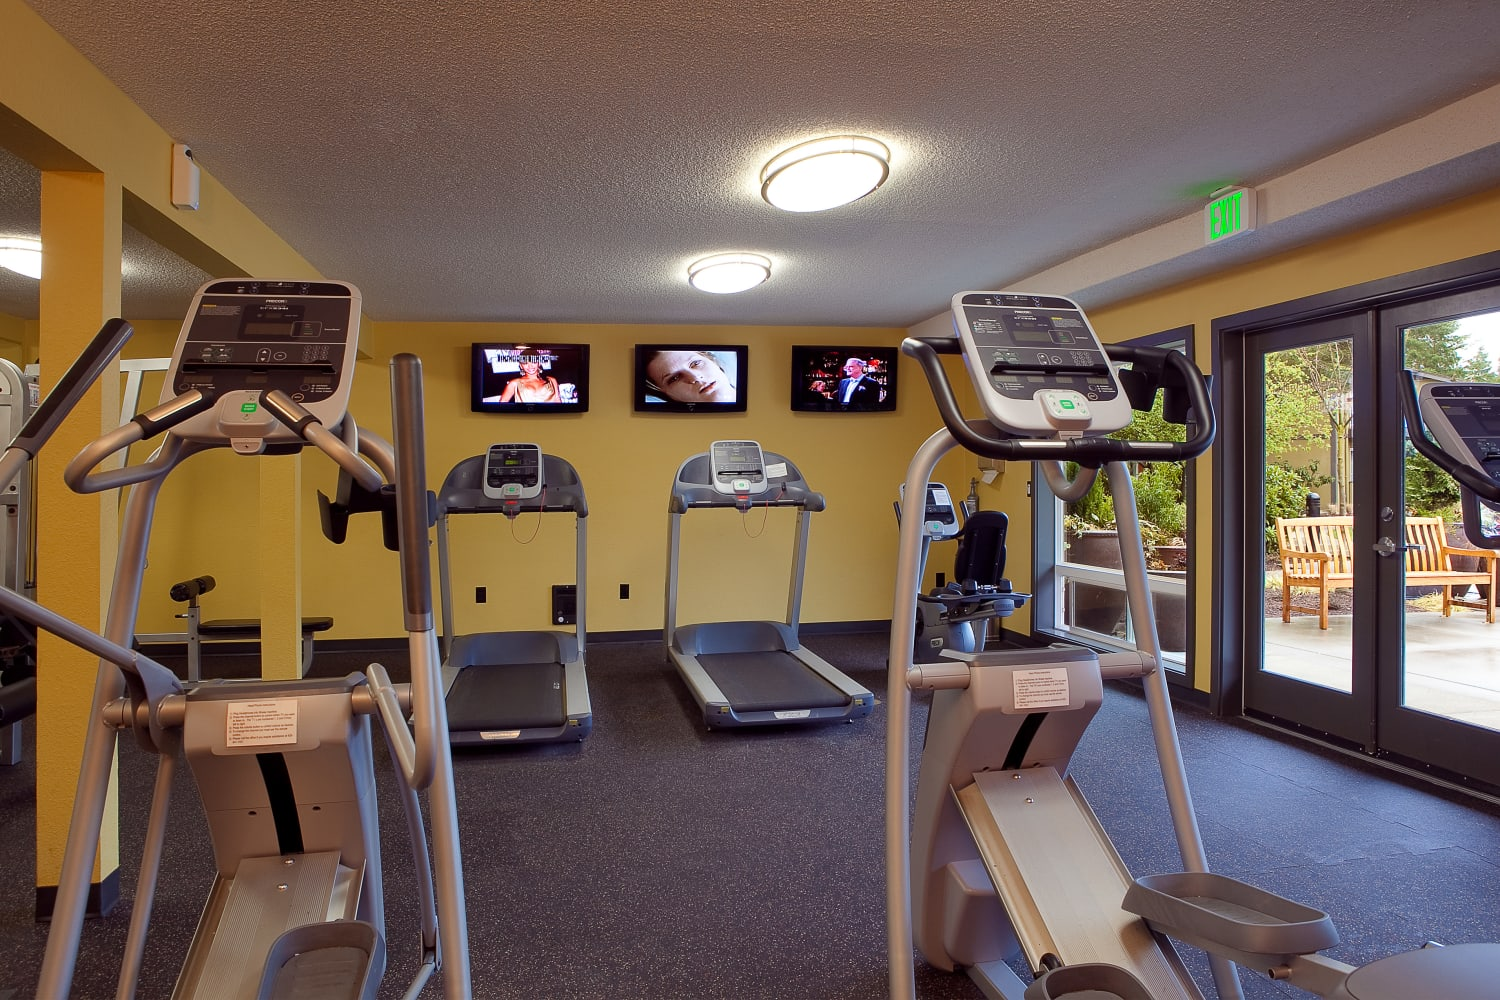 Gym at Edgewood Park Apartments in Bellevue, Washington